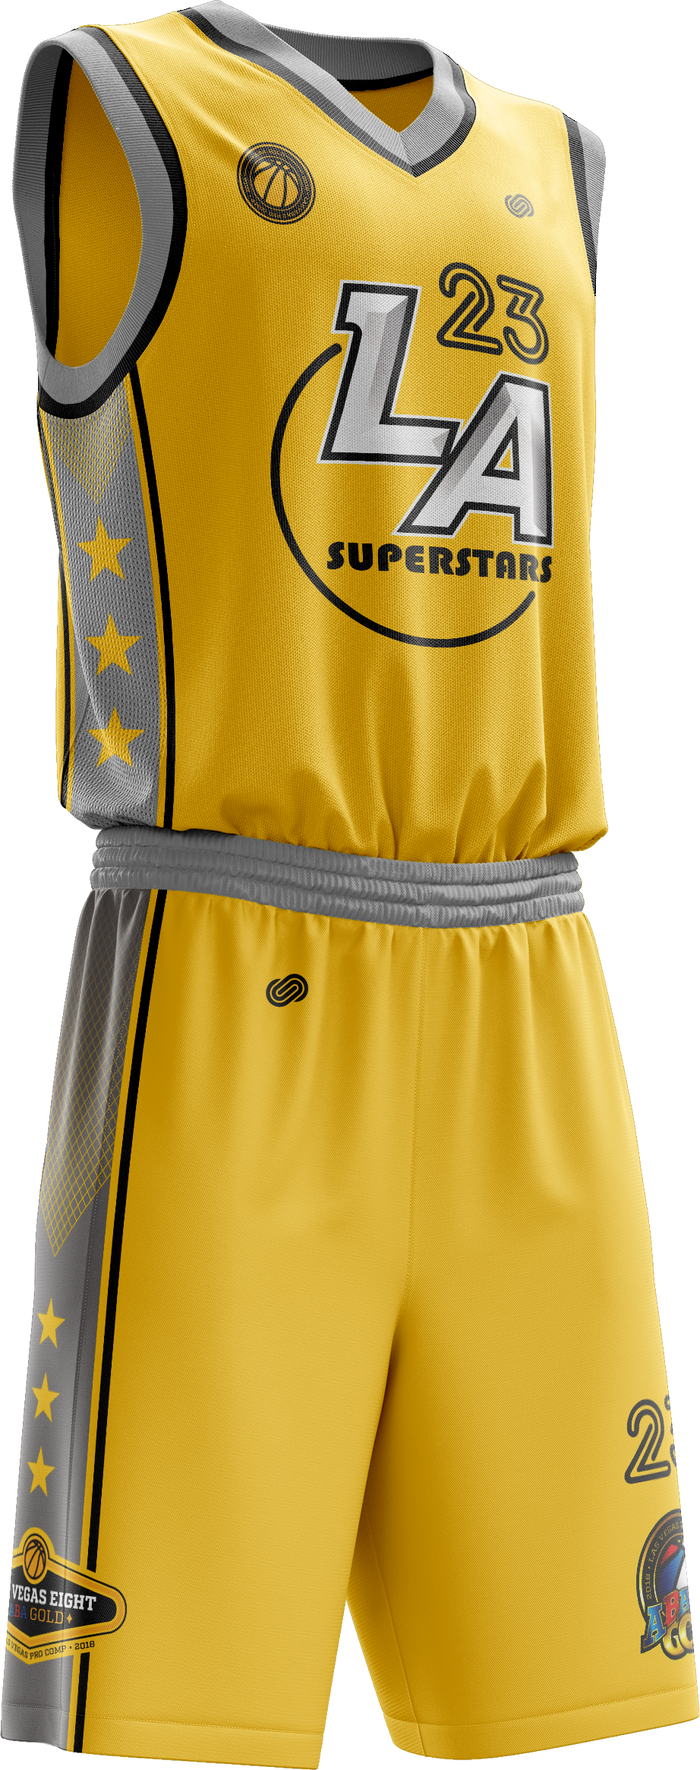 LA Superstars Home Uniform